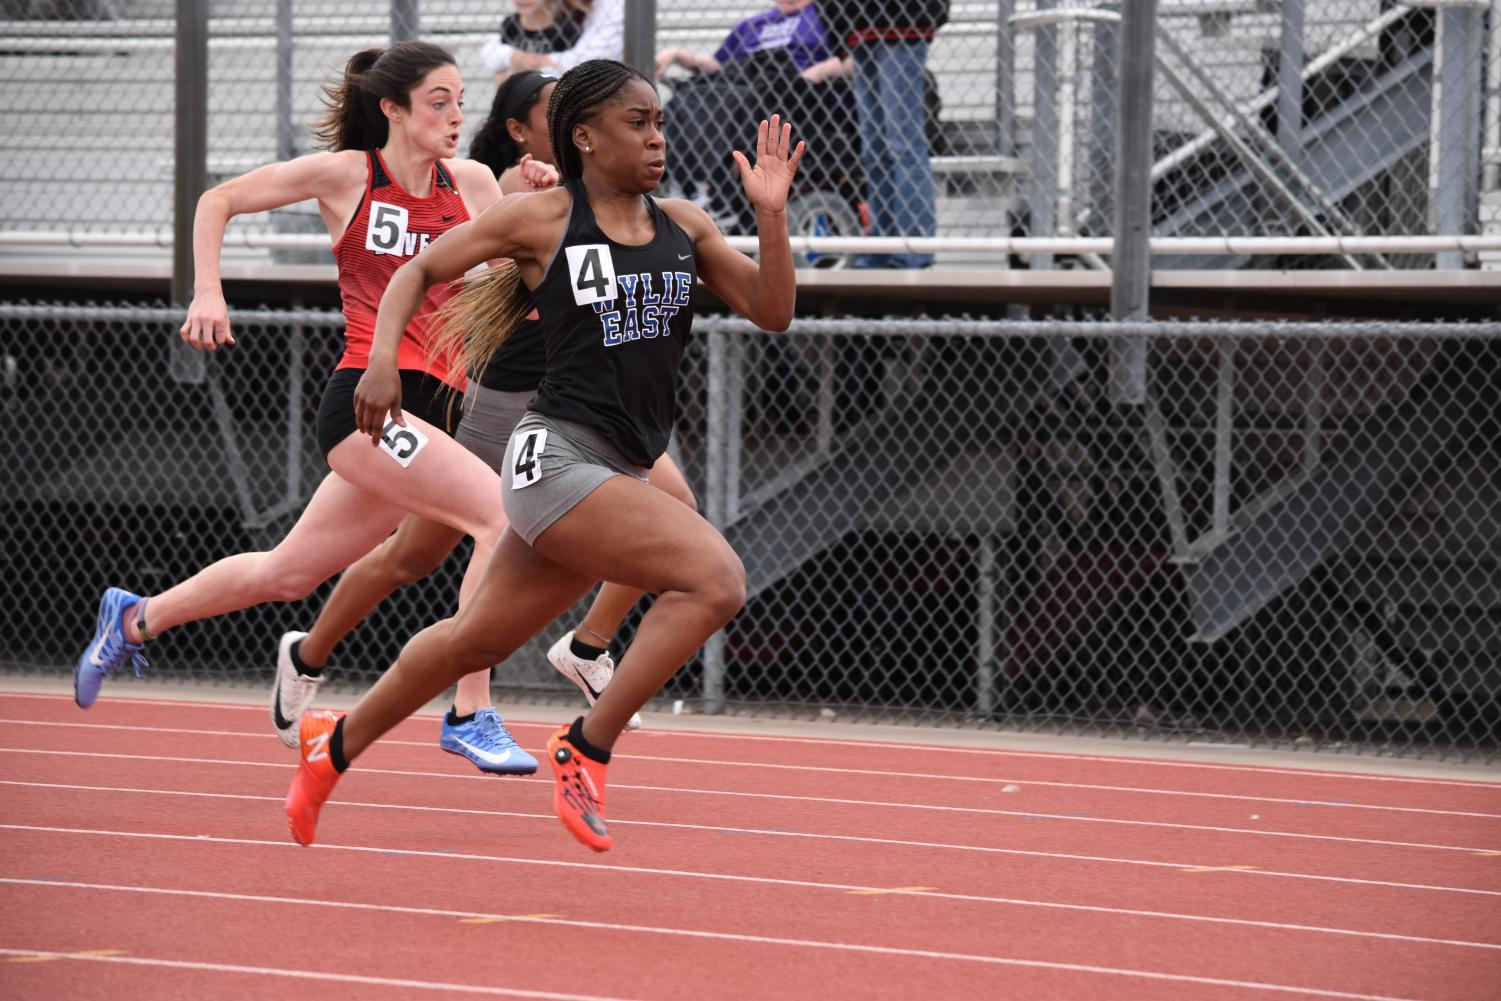 Fly+by+%2F%2F+Junior+Destini+Jeter+runs+during+the+District+10-5A+Track+%26+Field+Championship+meet+April+3.+Jeter+ran+her+300+meter+hurdles+race+in+42.36+and+will+be+advancing+to+the+Area+meet.